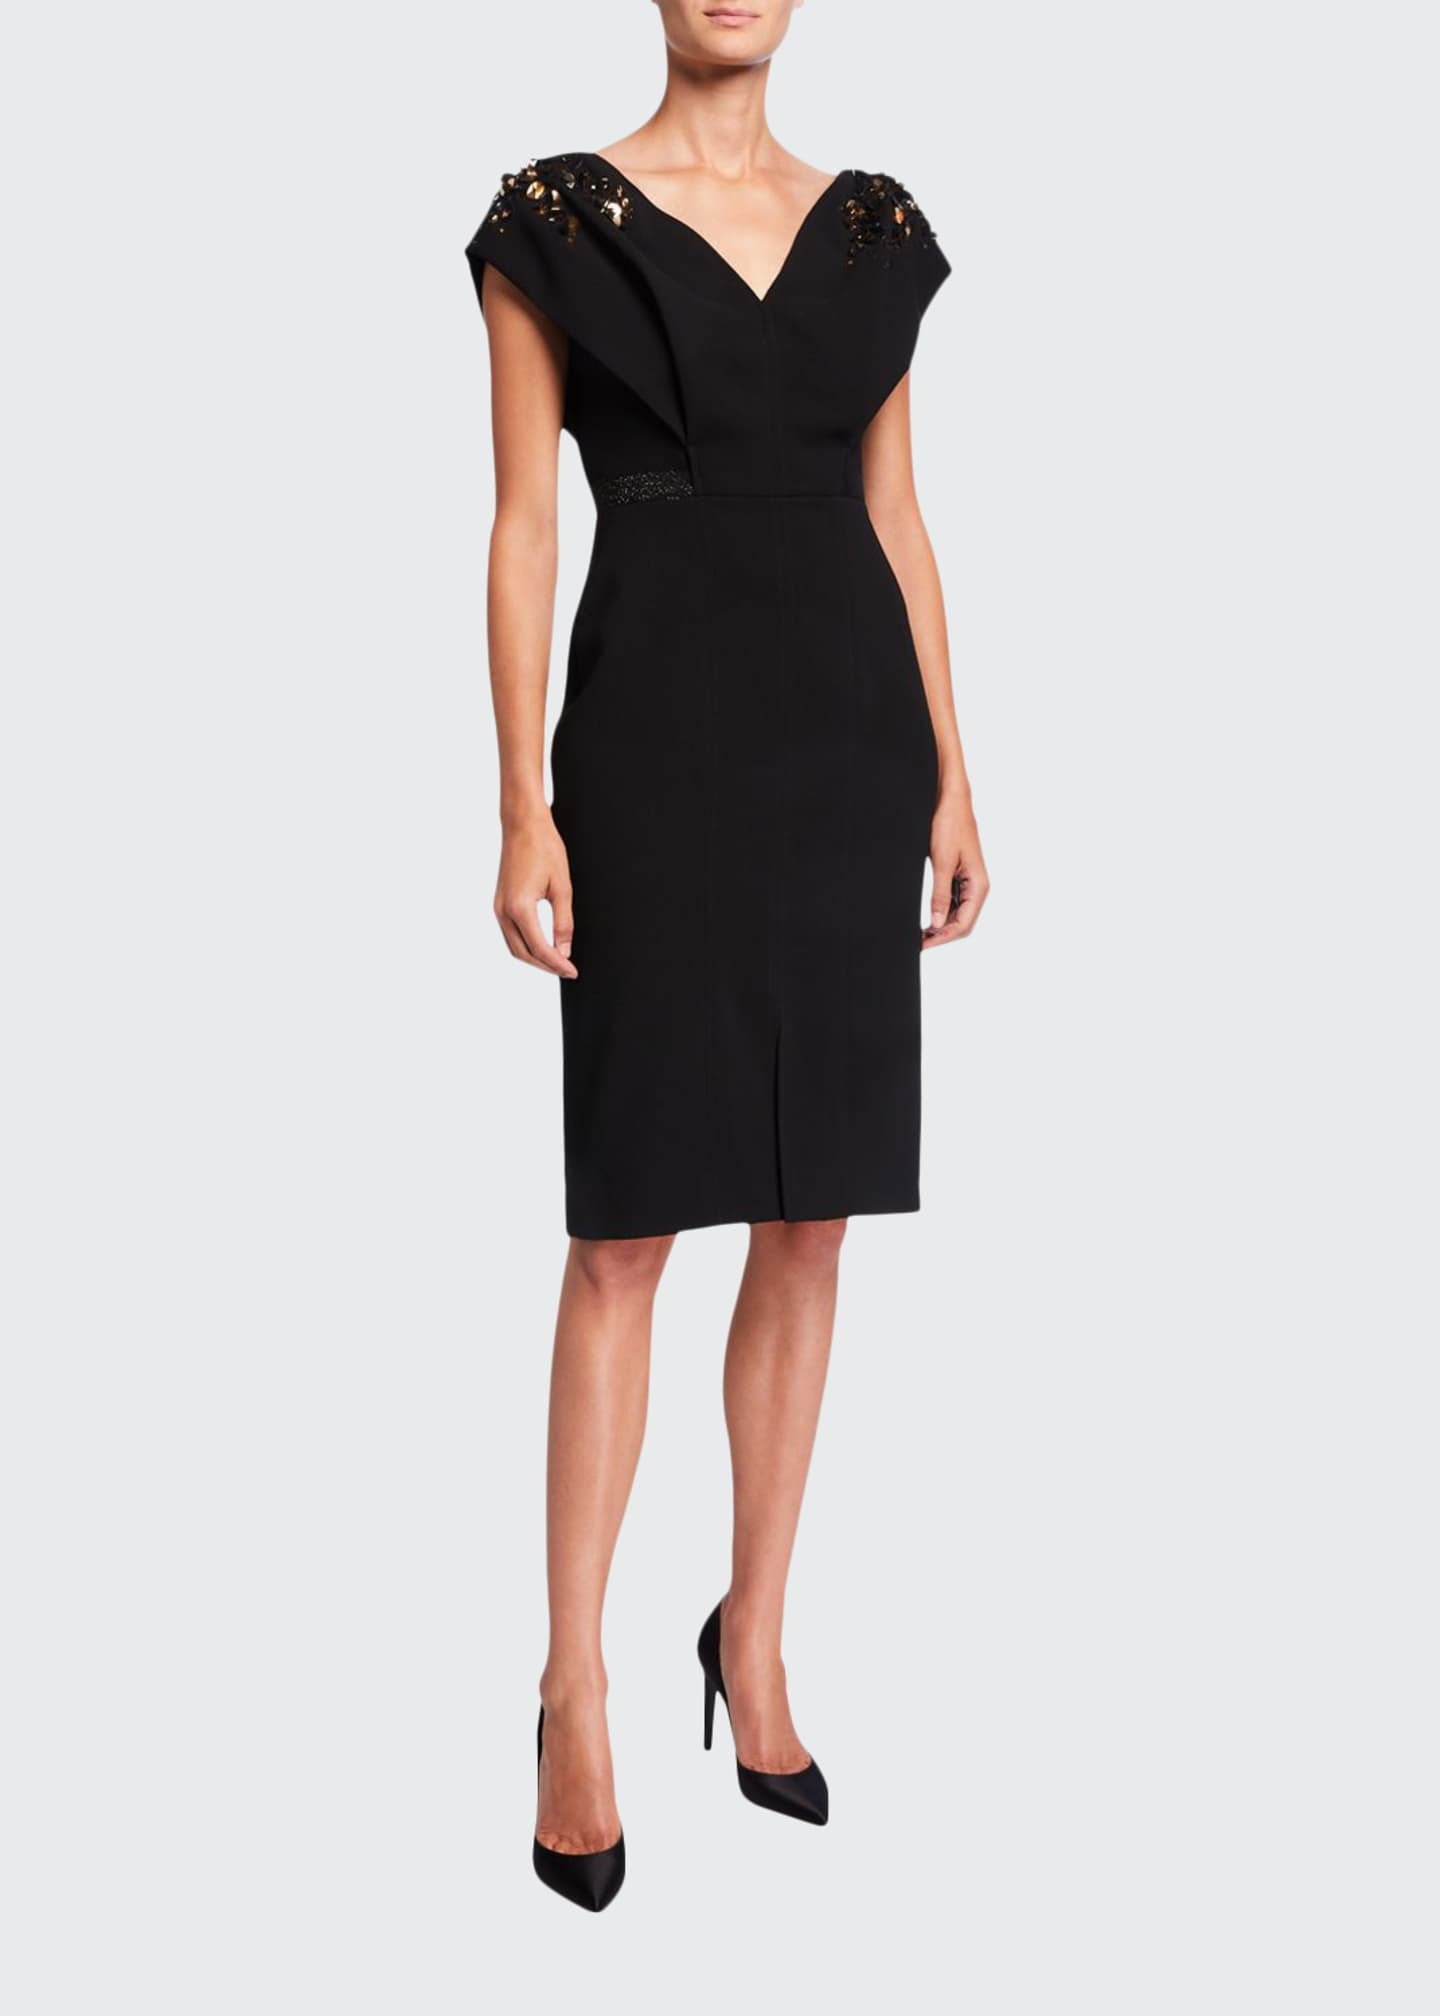 Atelier Caito for Herve Pierre Open V-Neck Embroidered